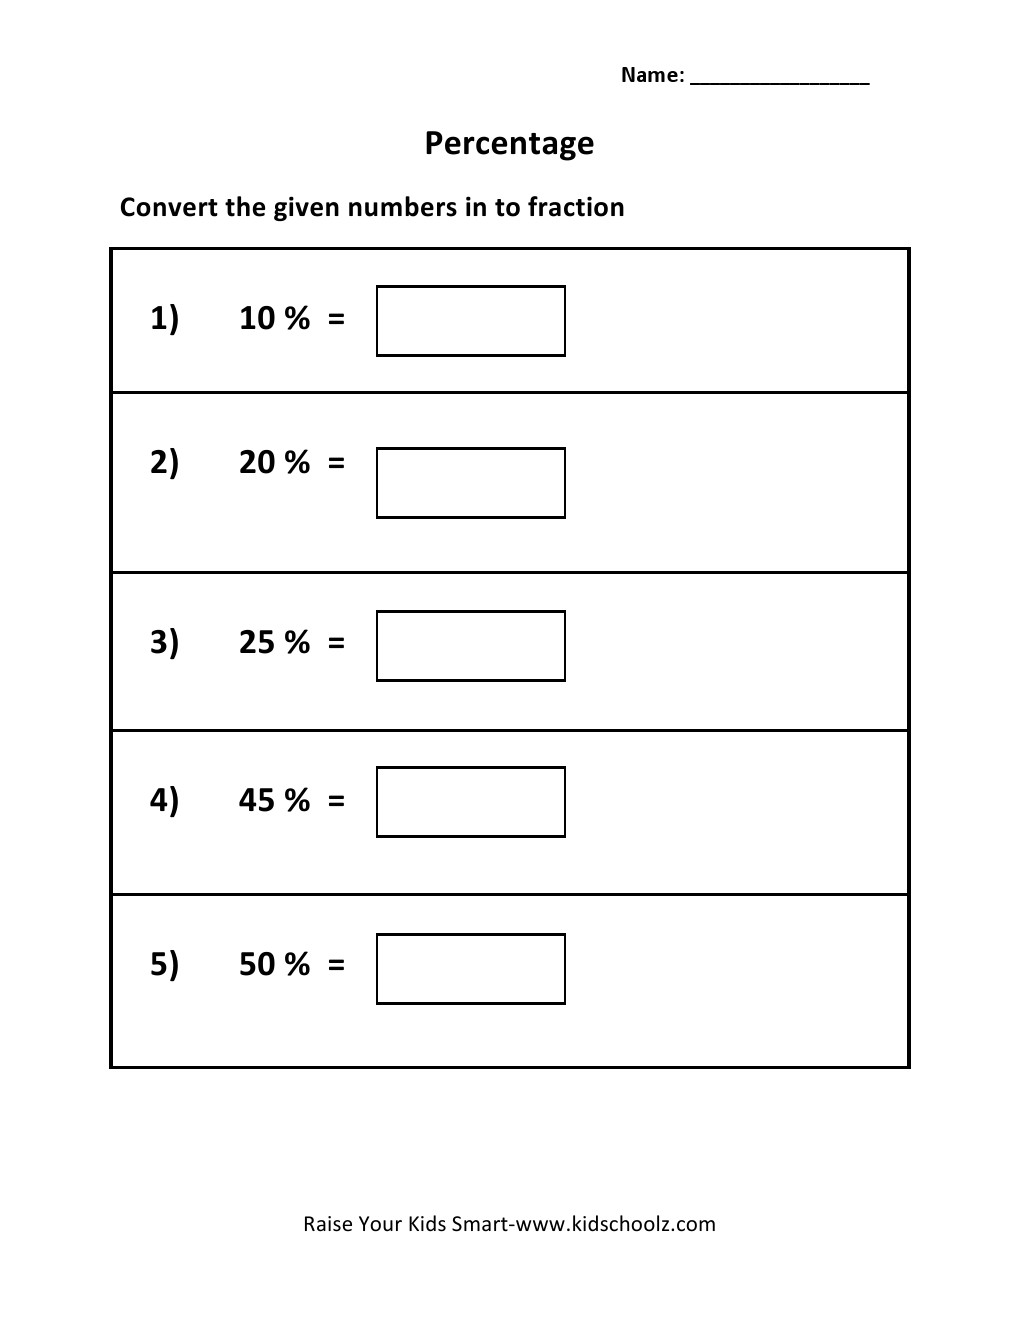 worksheet Convert Percent To Fraction percent to fraction worksheet grade 5 percentage convert worksheet